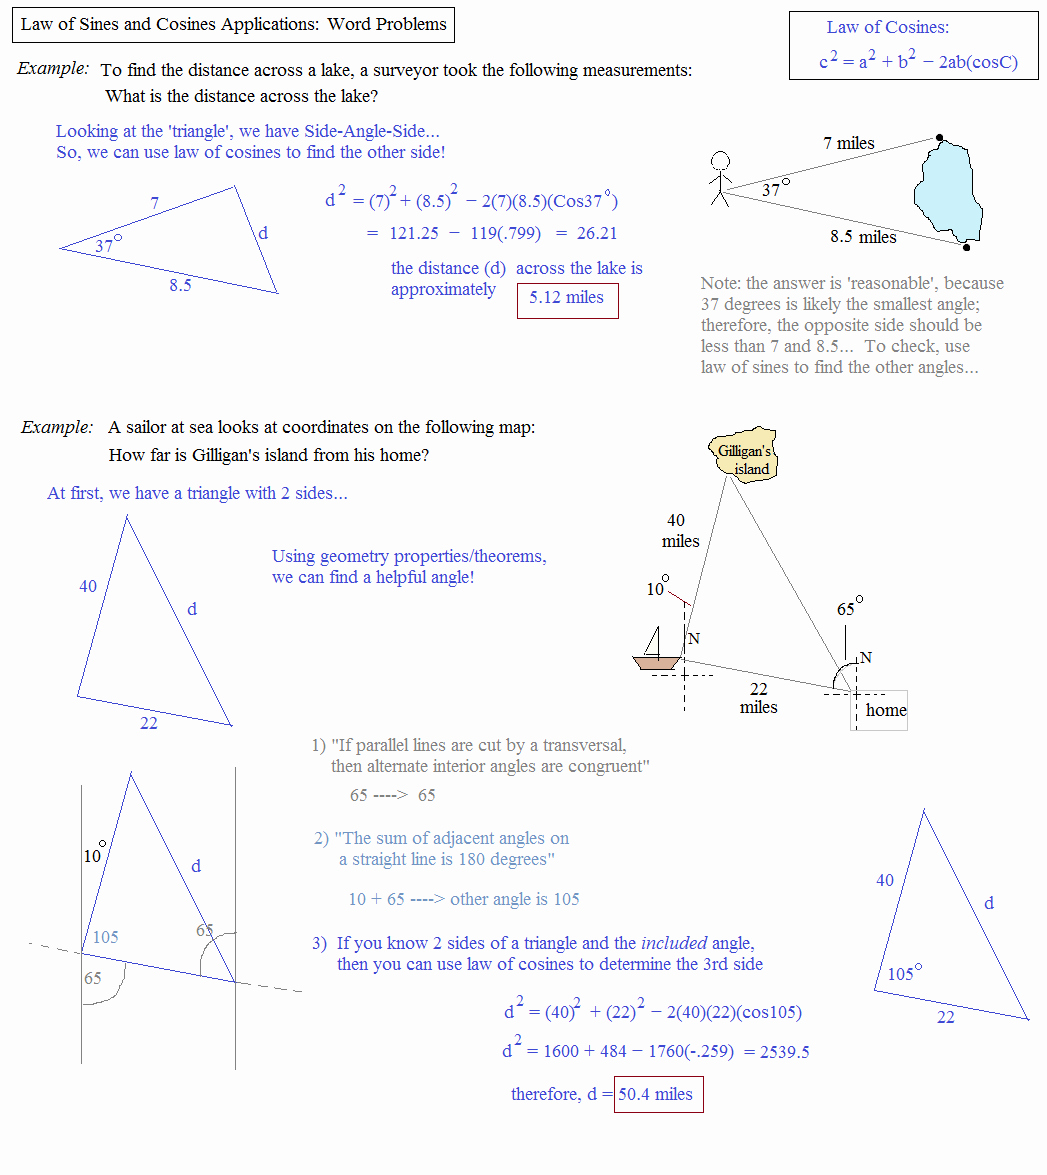 Law Of Sines Worksheet Answers Best Of the Law Of Sines Worksheet Answers with Work Ourclipart